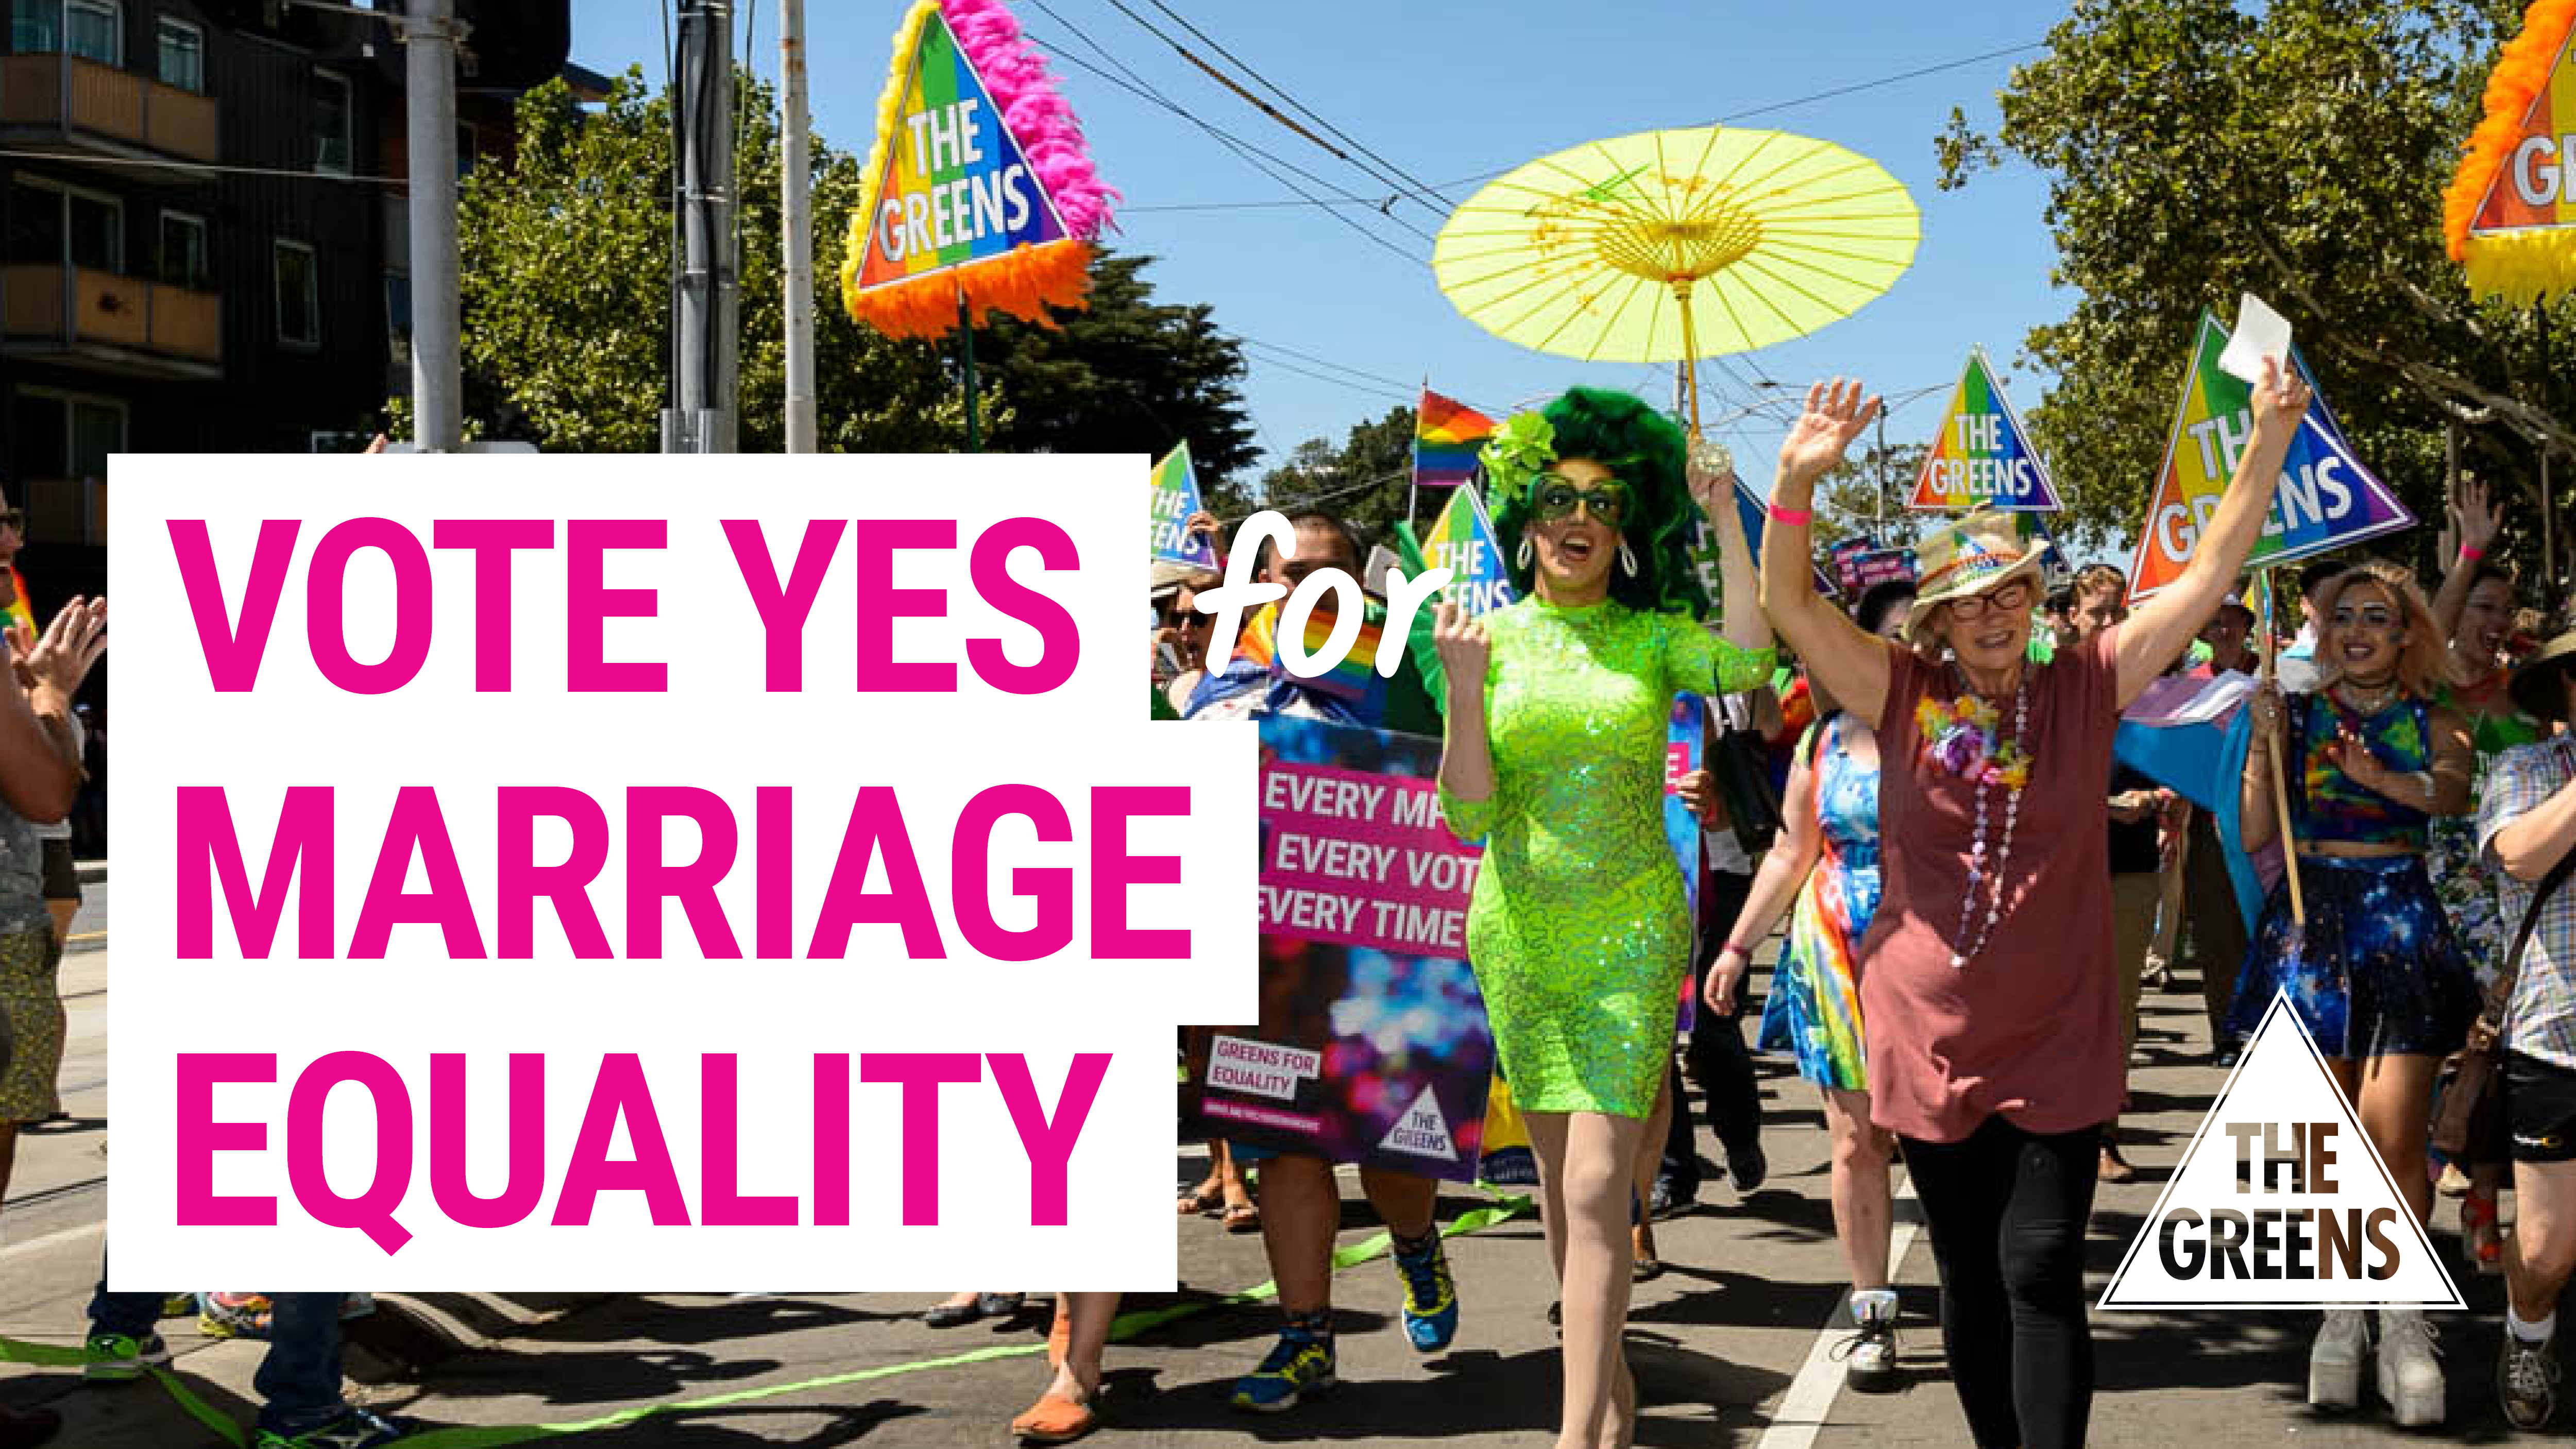 Image: vote yes for marriage equality